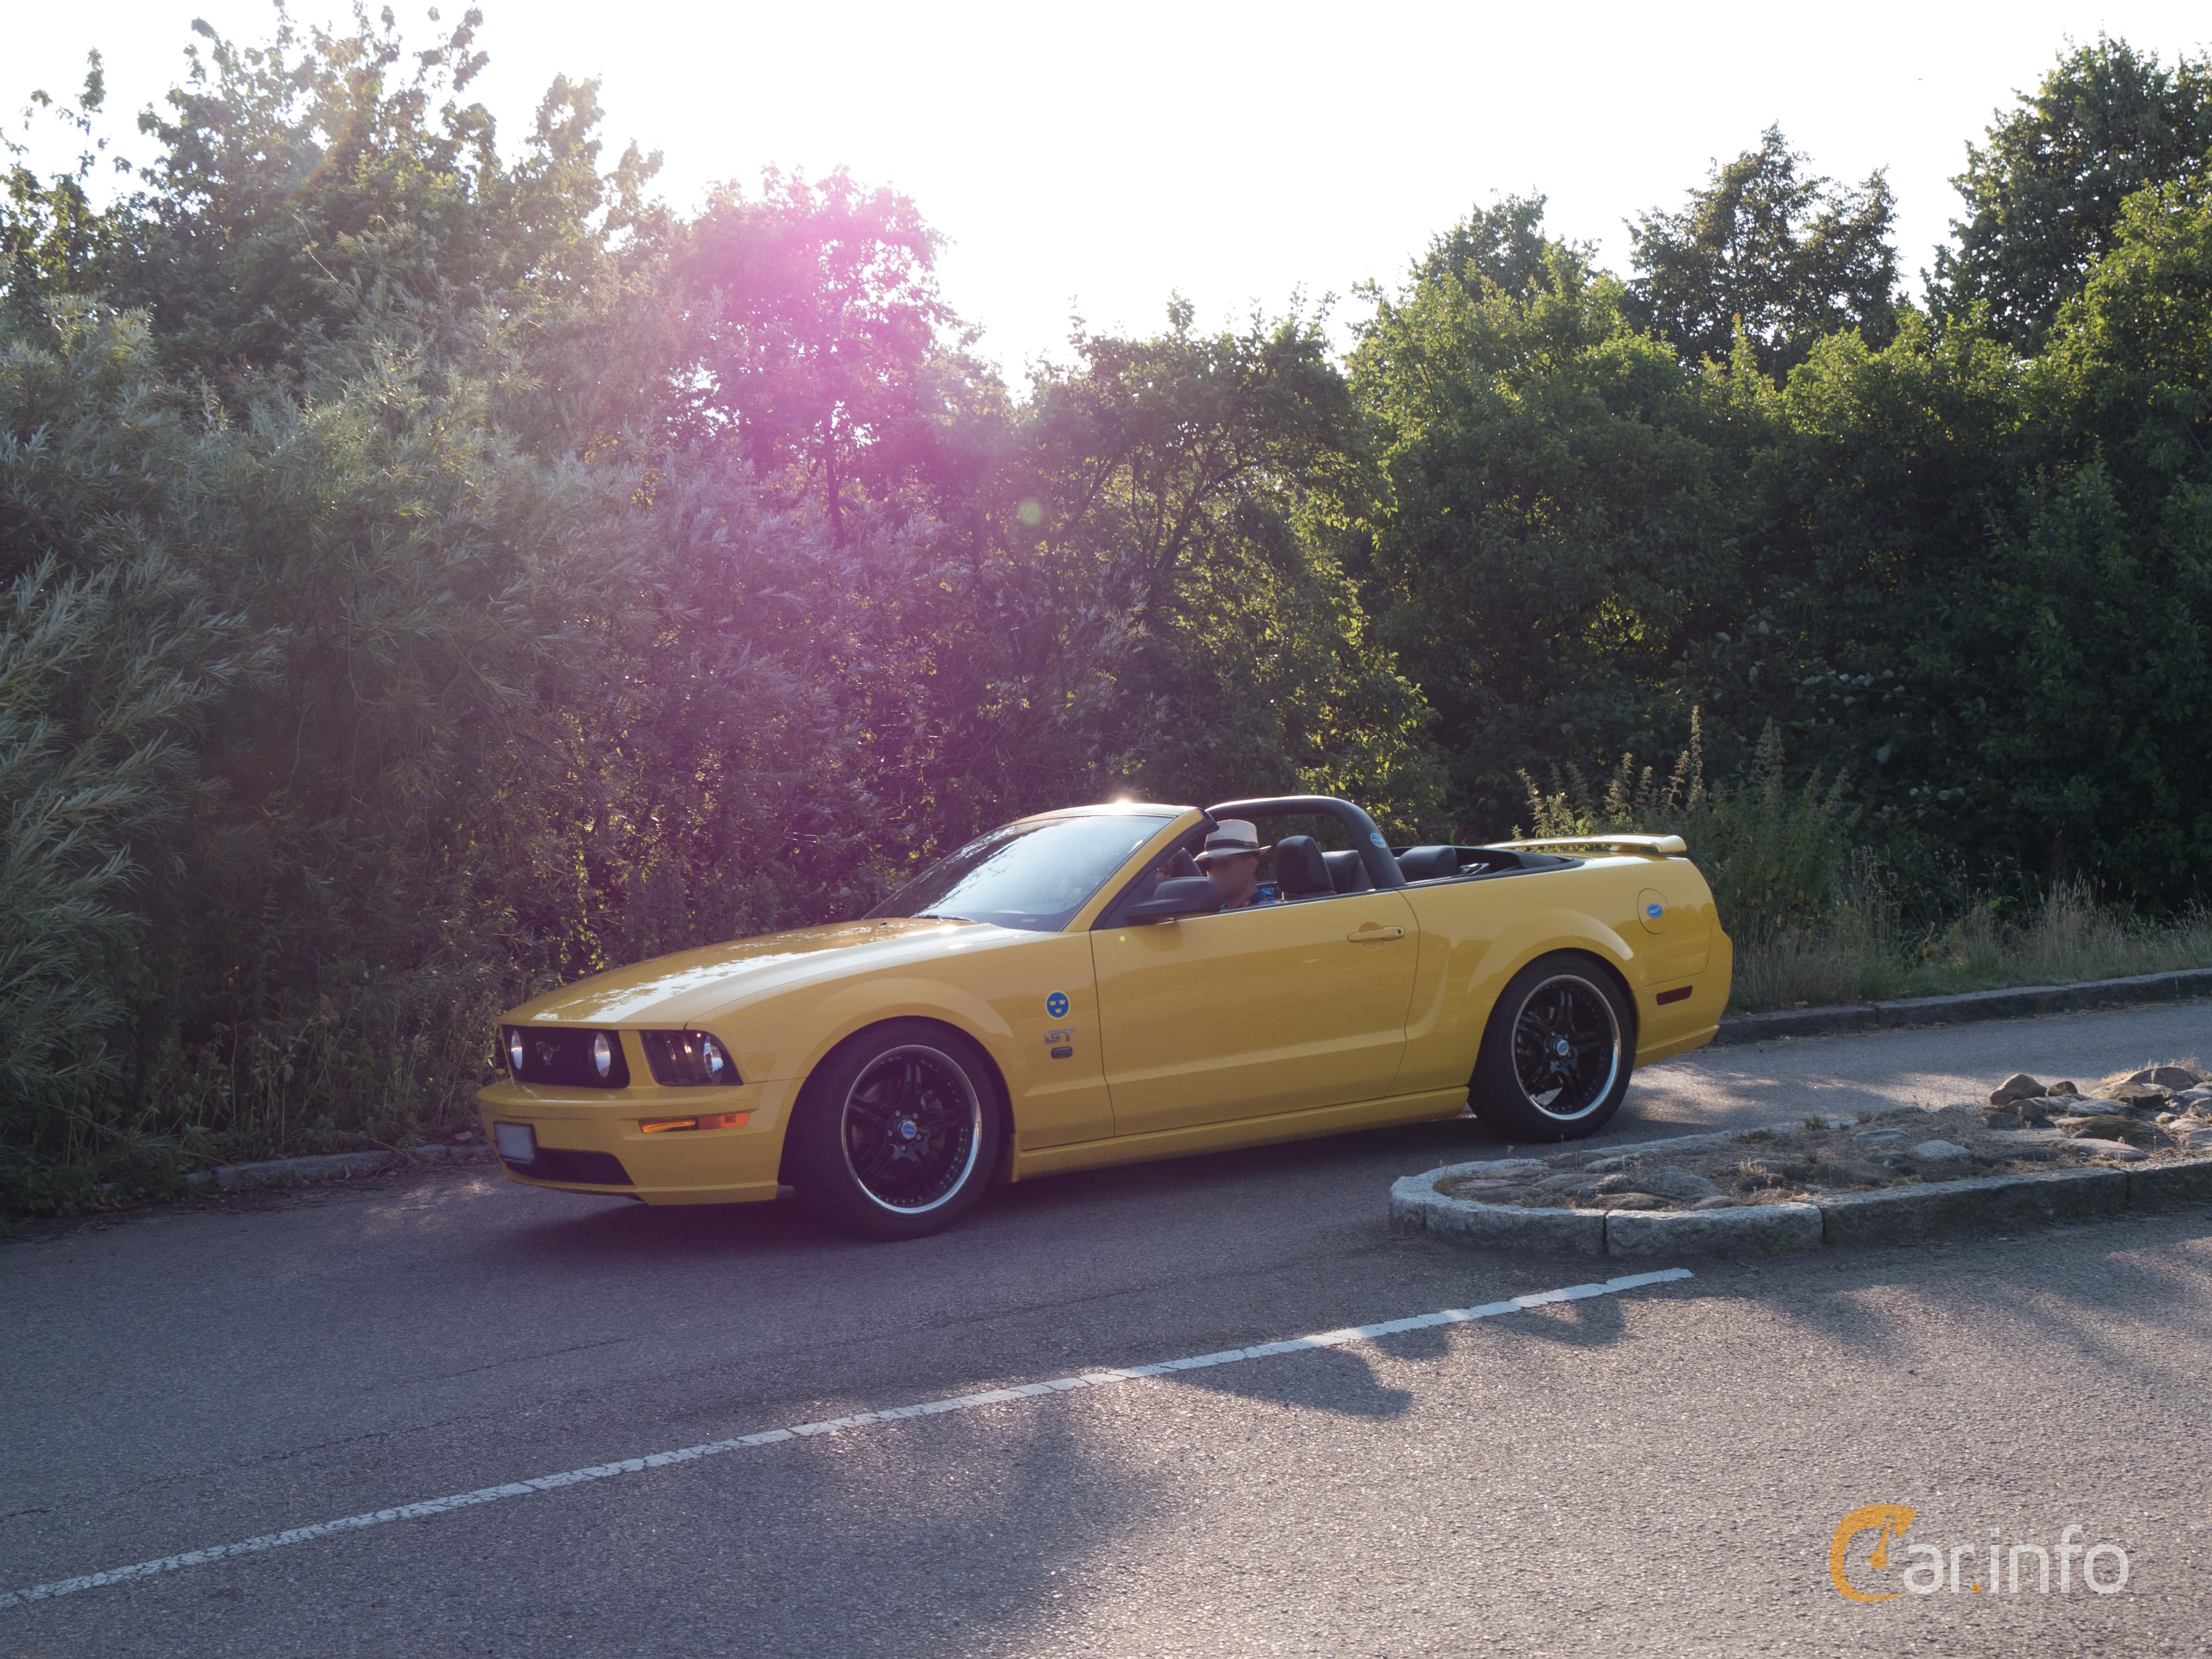 5 images of Ford Mustang GT Convertible 4 6 V8 Automatic 304hp